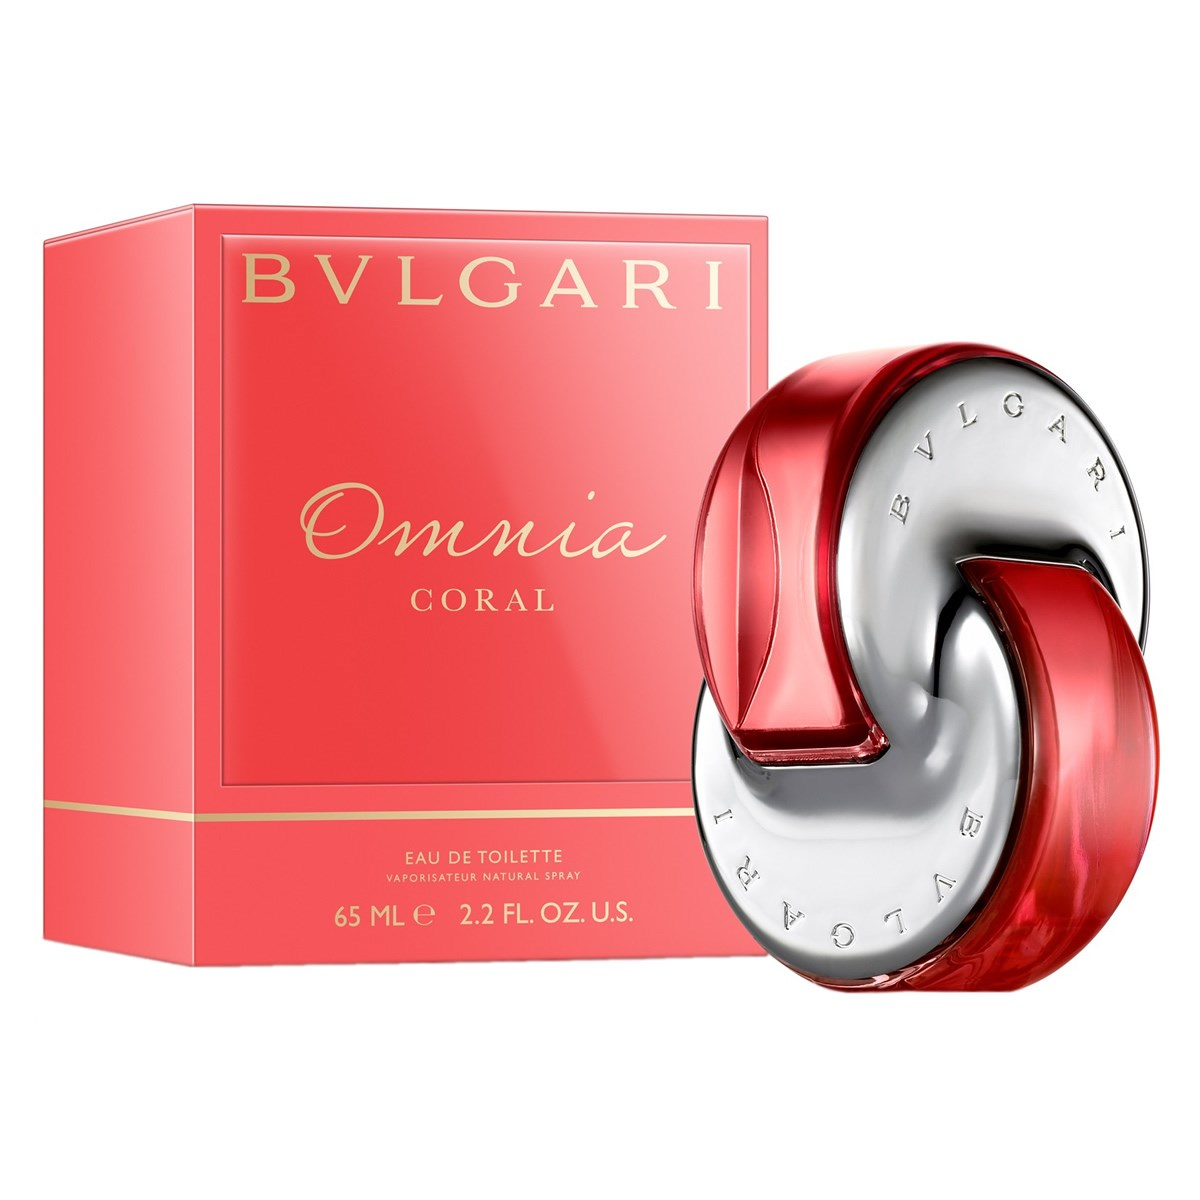 Bvlgari Omnia Coral EDT For Her